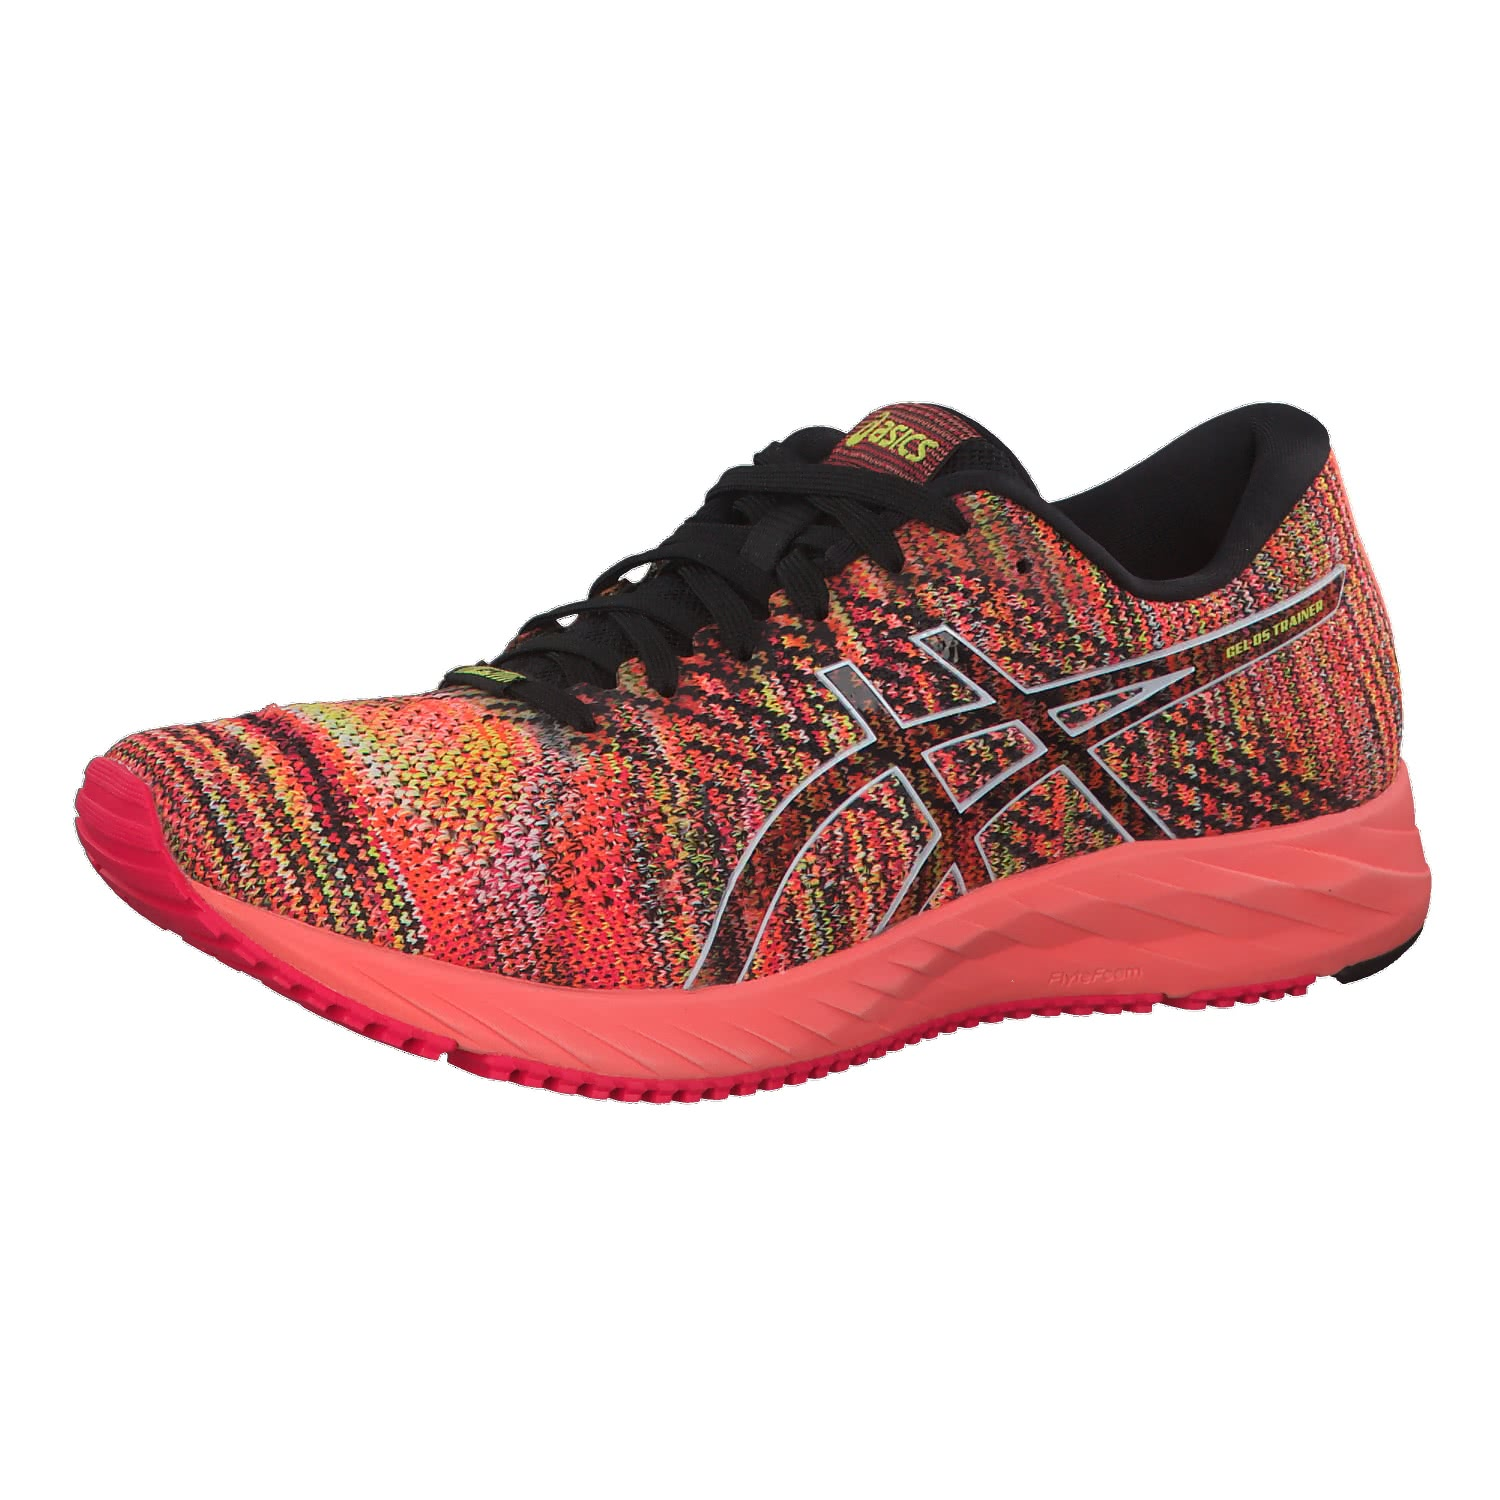 Asics Damen Laufschuhe Gel-DS Trainer 24 1012A158 | cortexpower.de